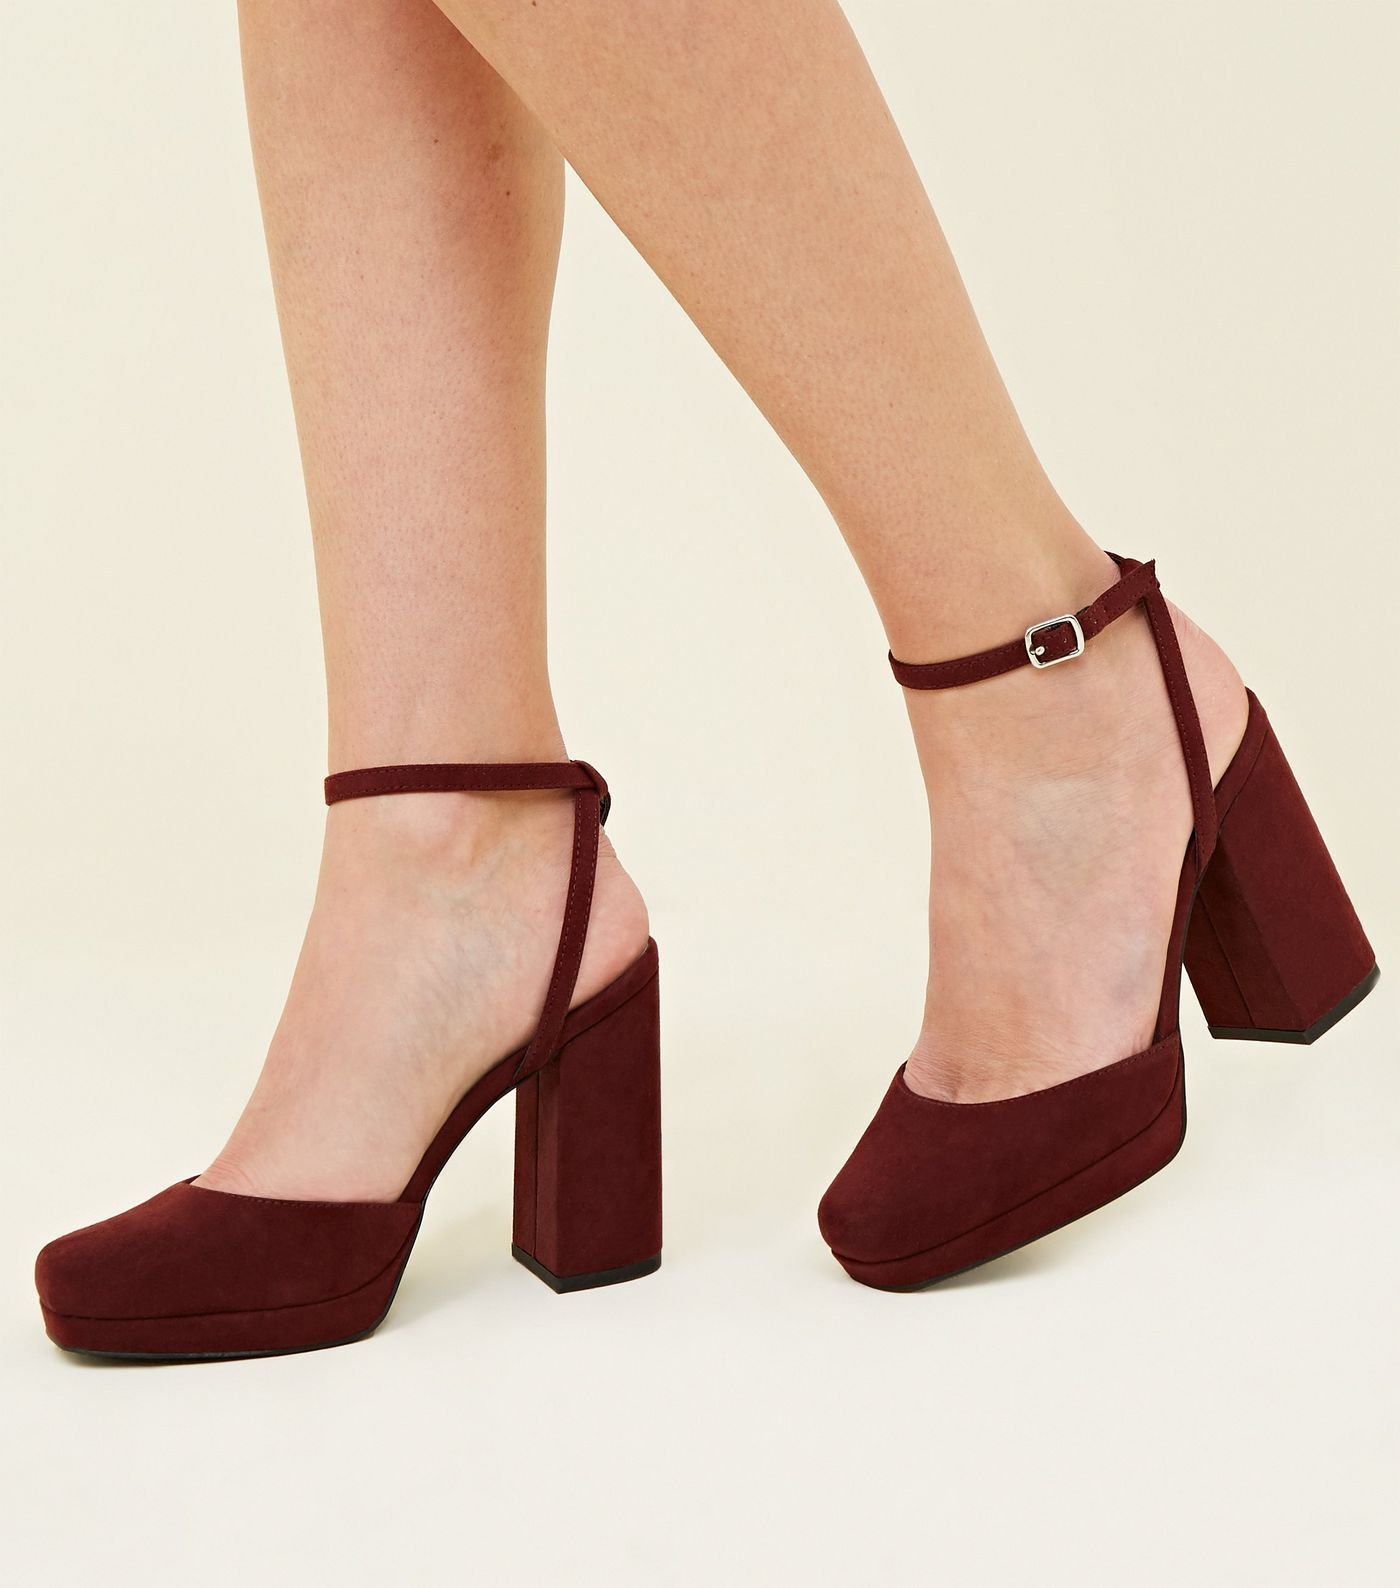 29a76c575a8 Wide Fit Black Suedette Square Toe Heels in 2019